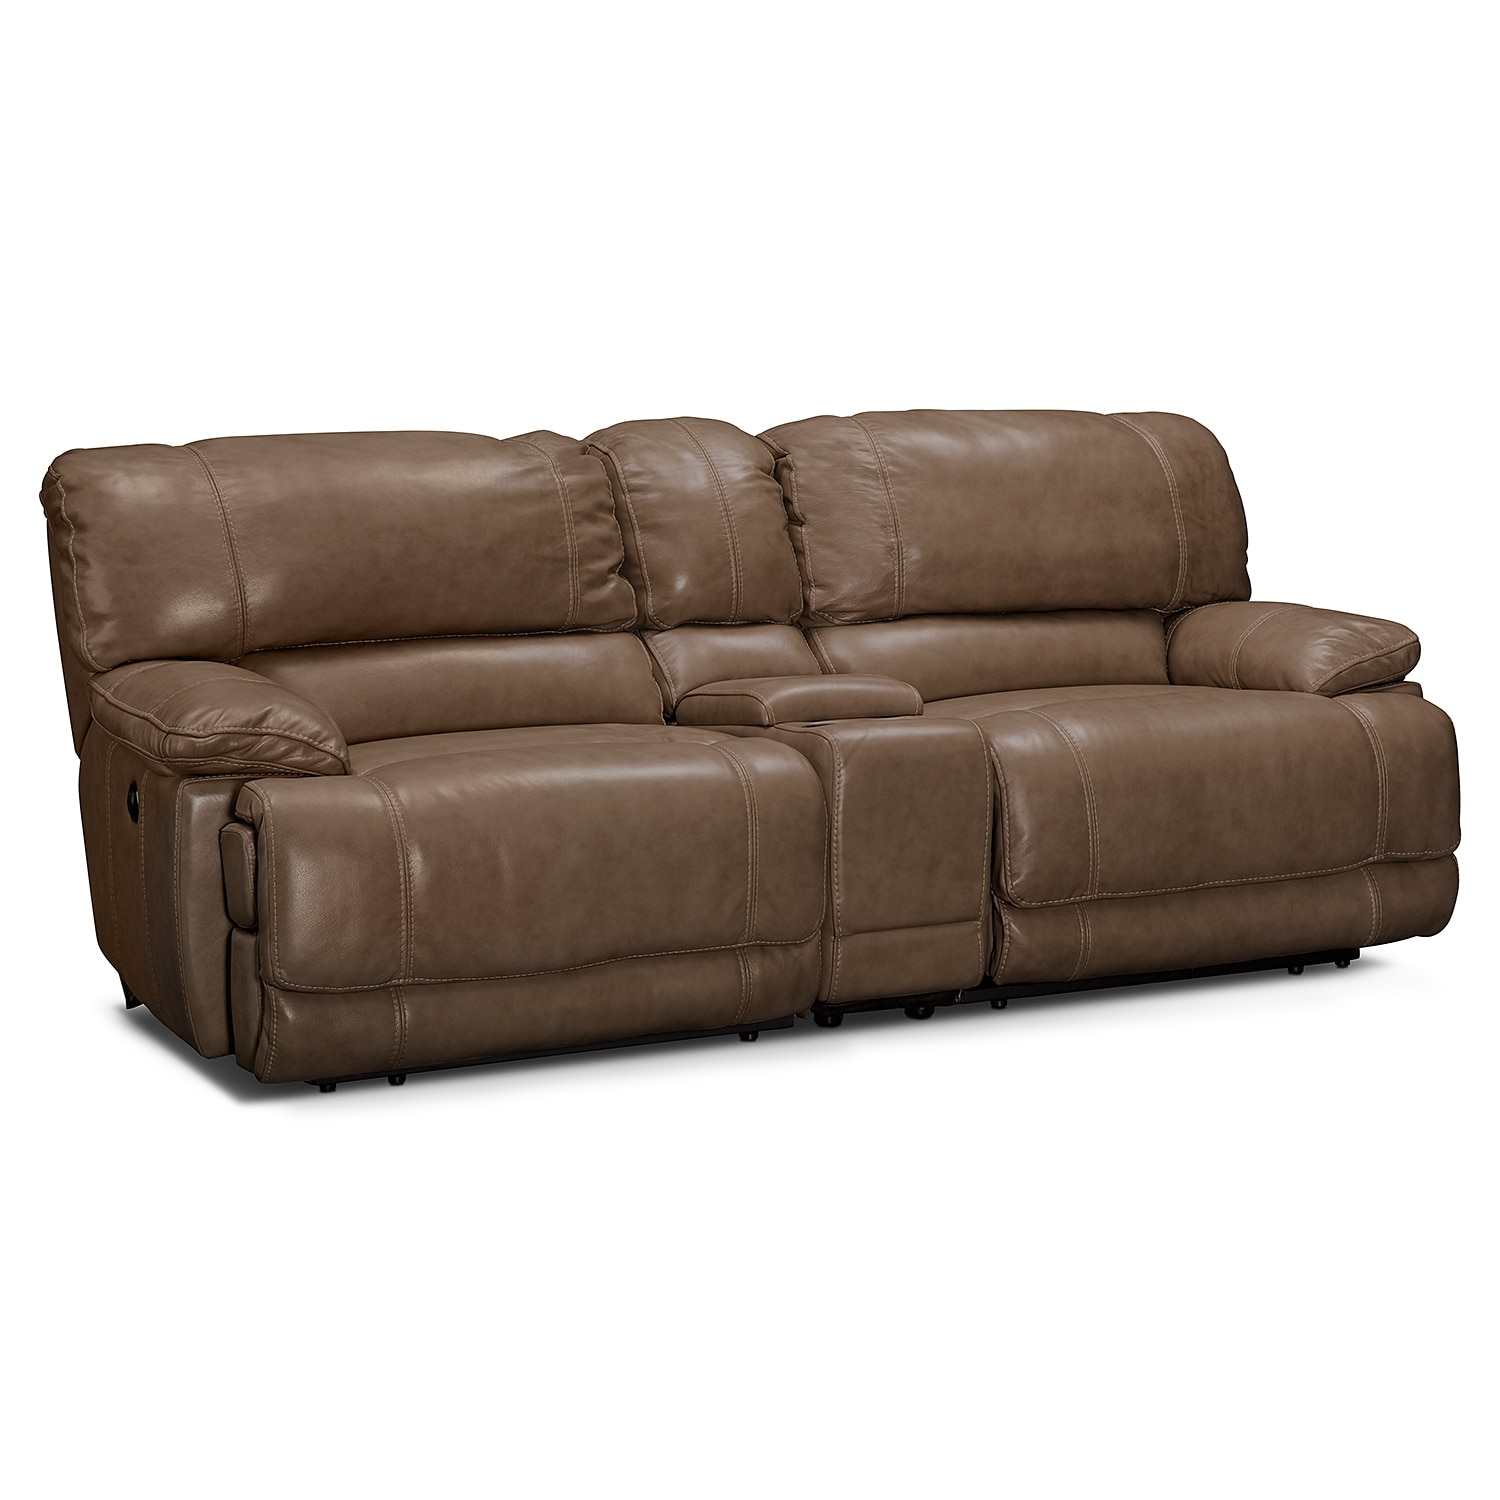 St Malo Power Reclining Sofa with Console Taupe Value  : 272342 from www.valuecityfurniture.com size 1500 x 1500 jpeg 161kB